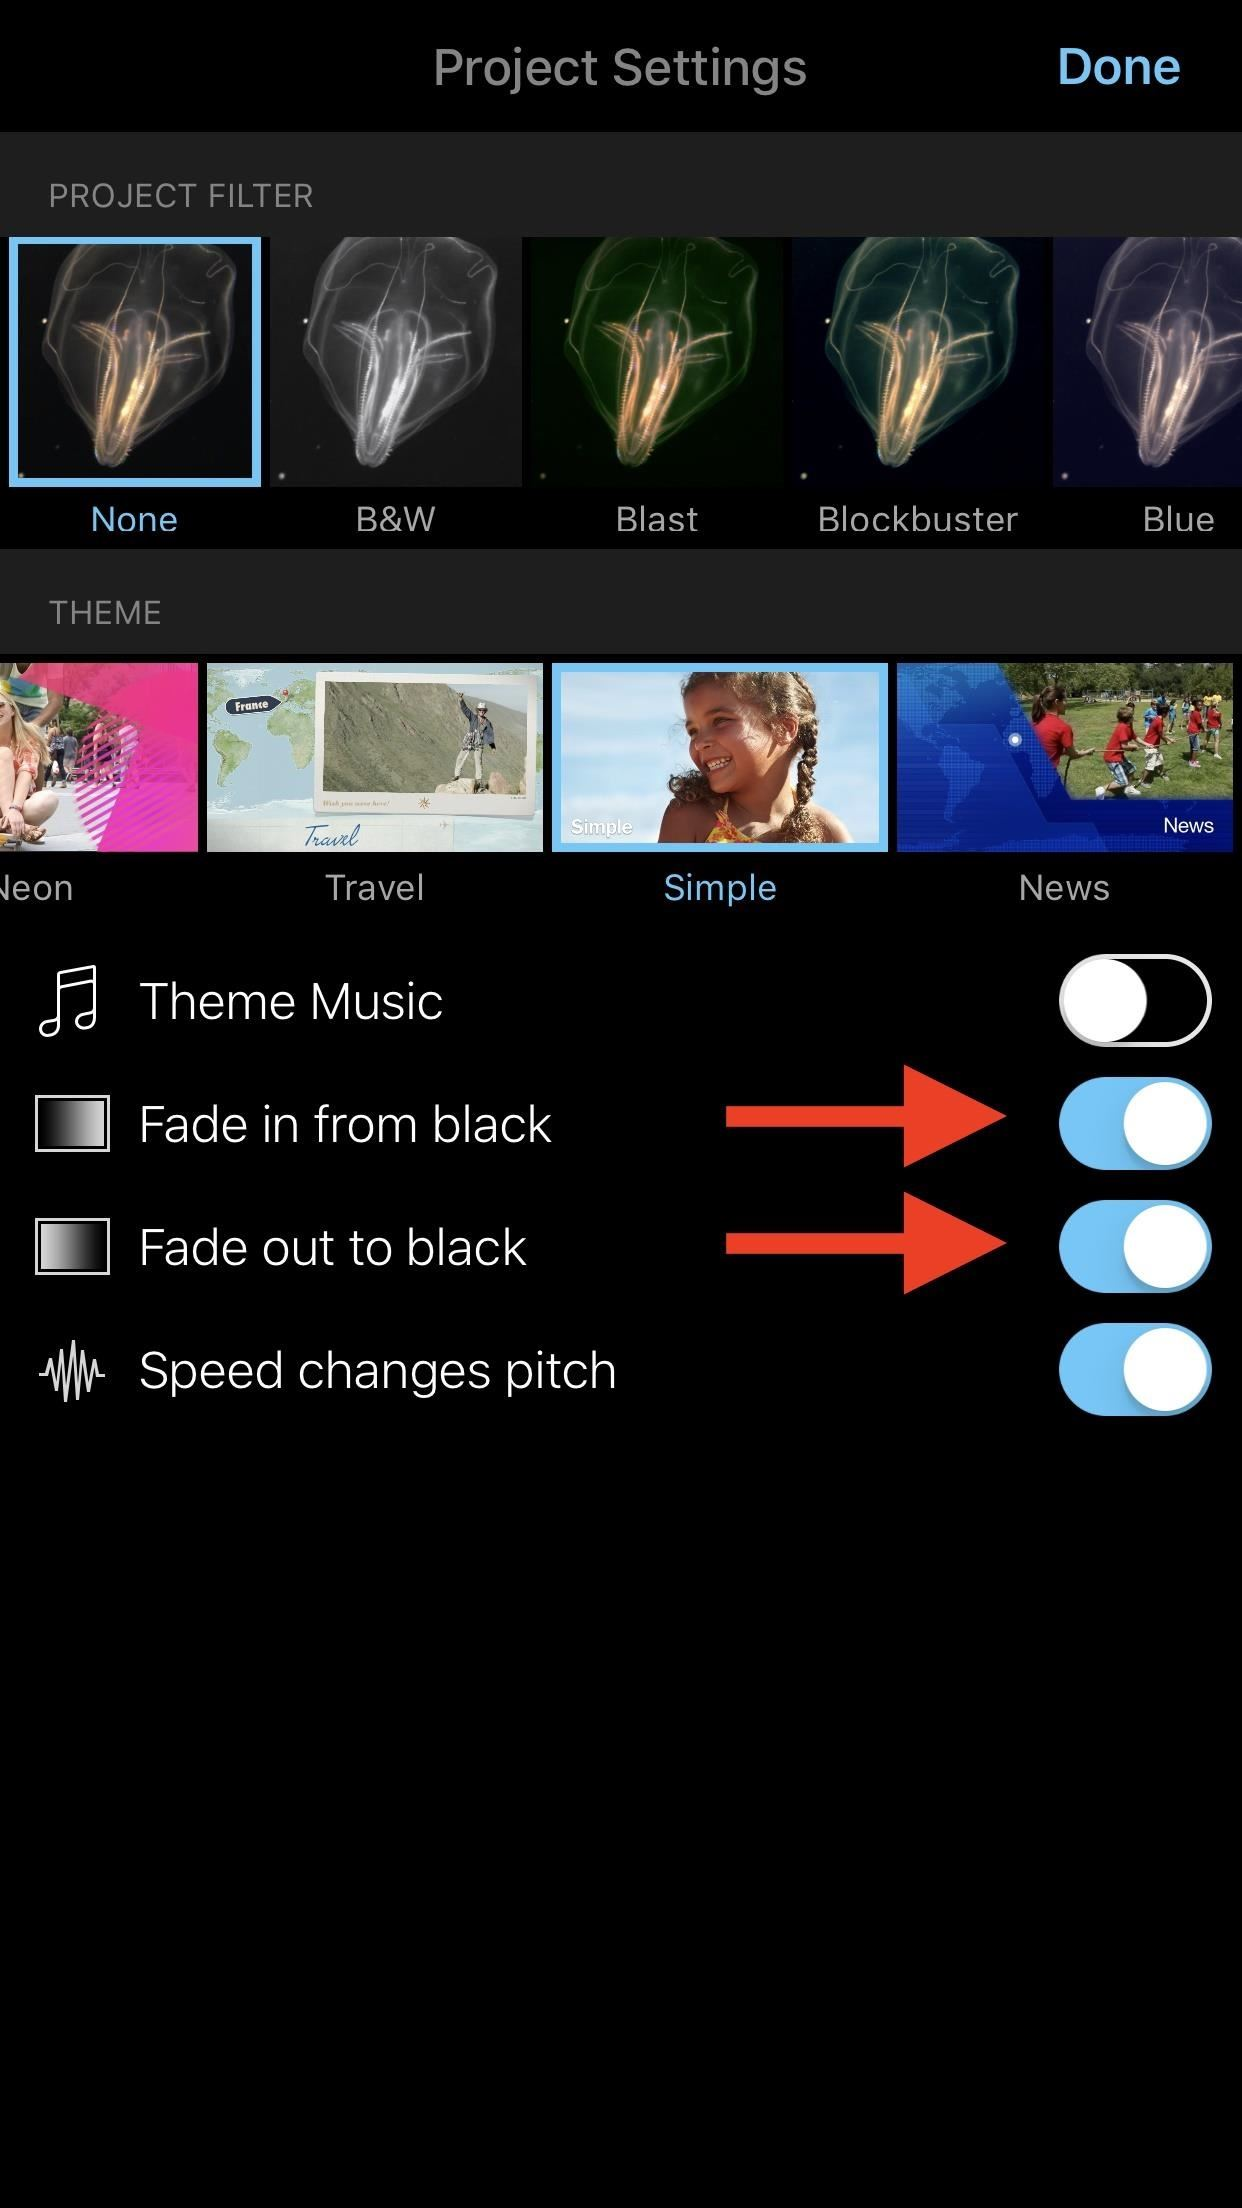 How to Add Fade-Ins, Fade-Outs & Fade-Through Transitions to iMovie Projects on Your iPhone